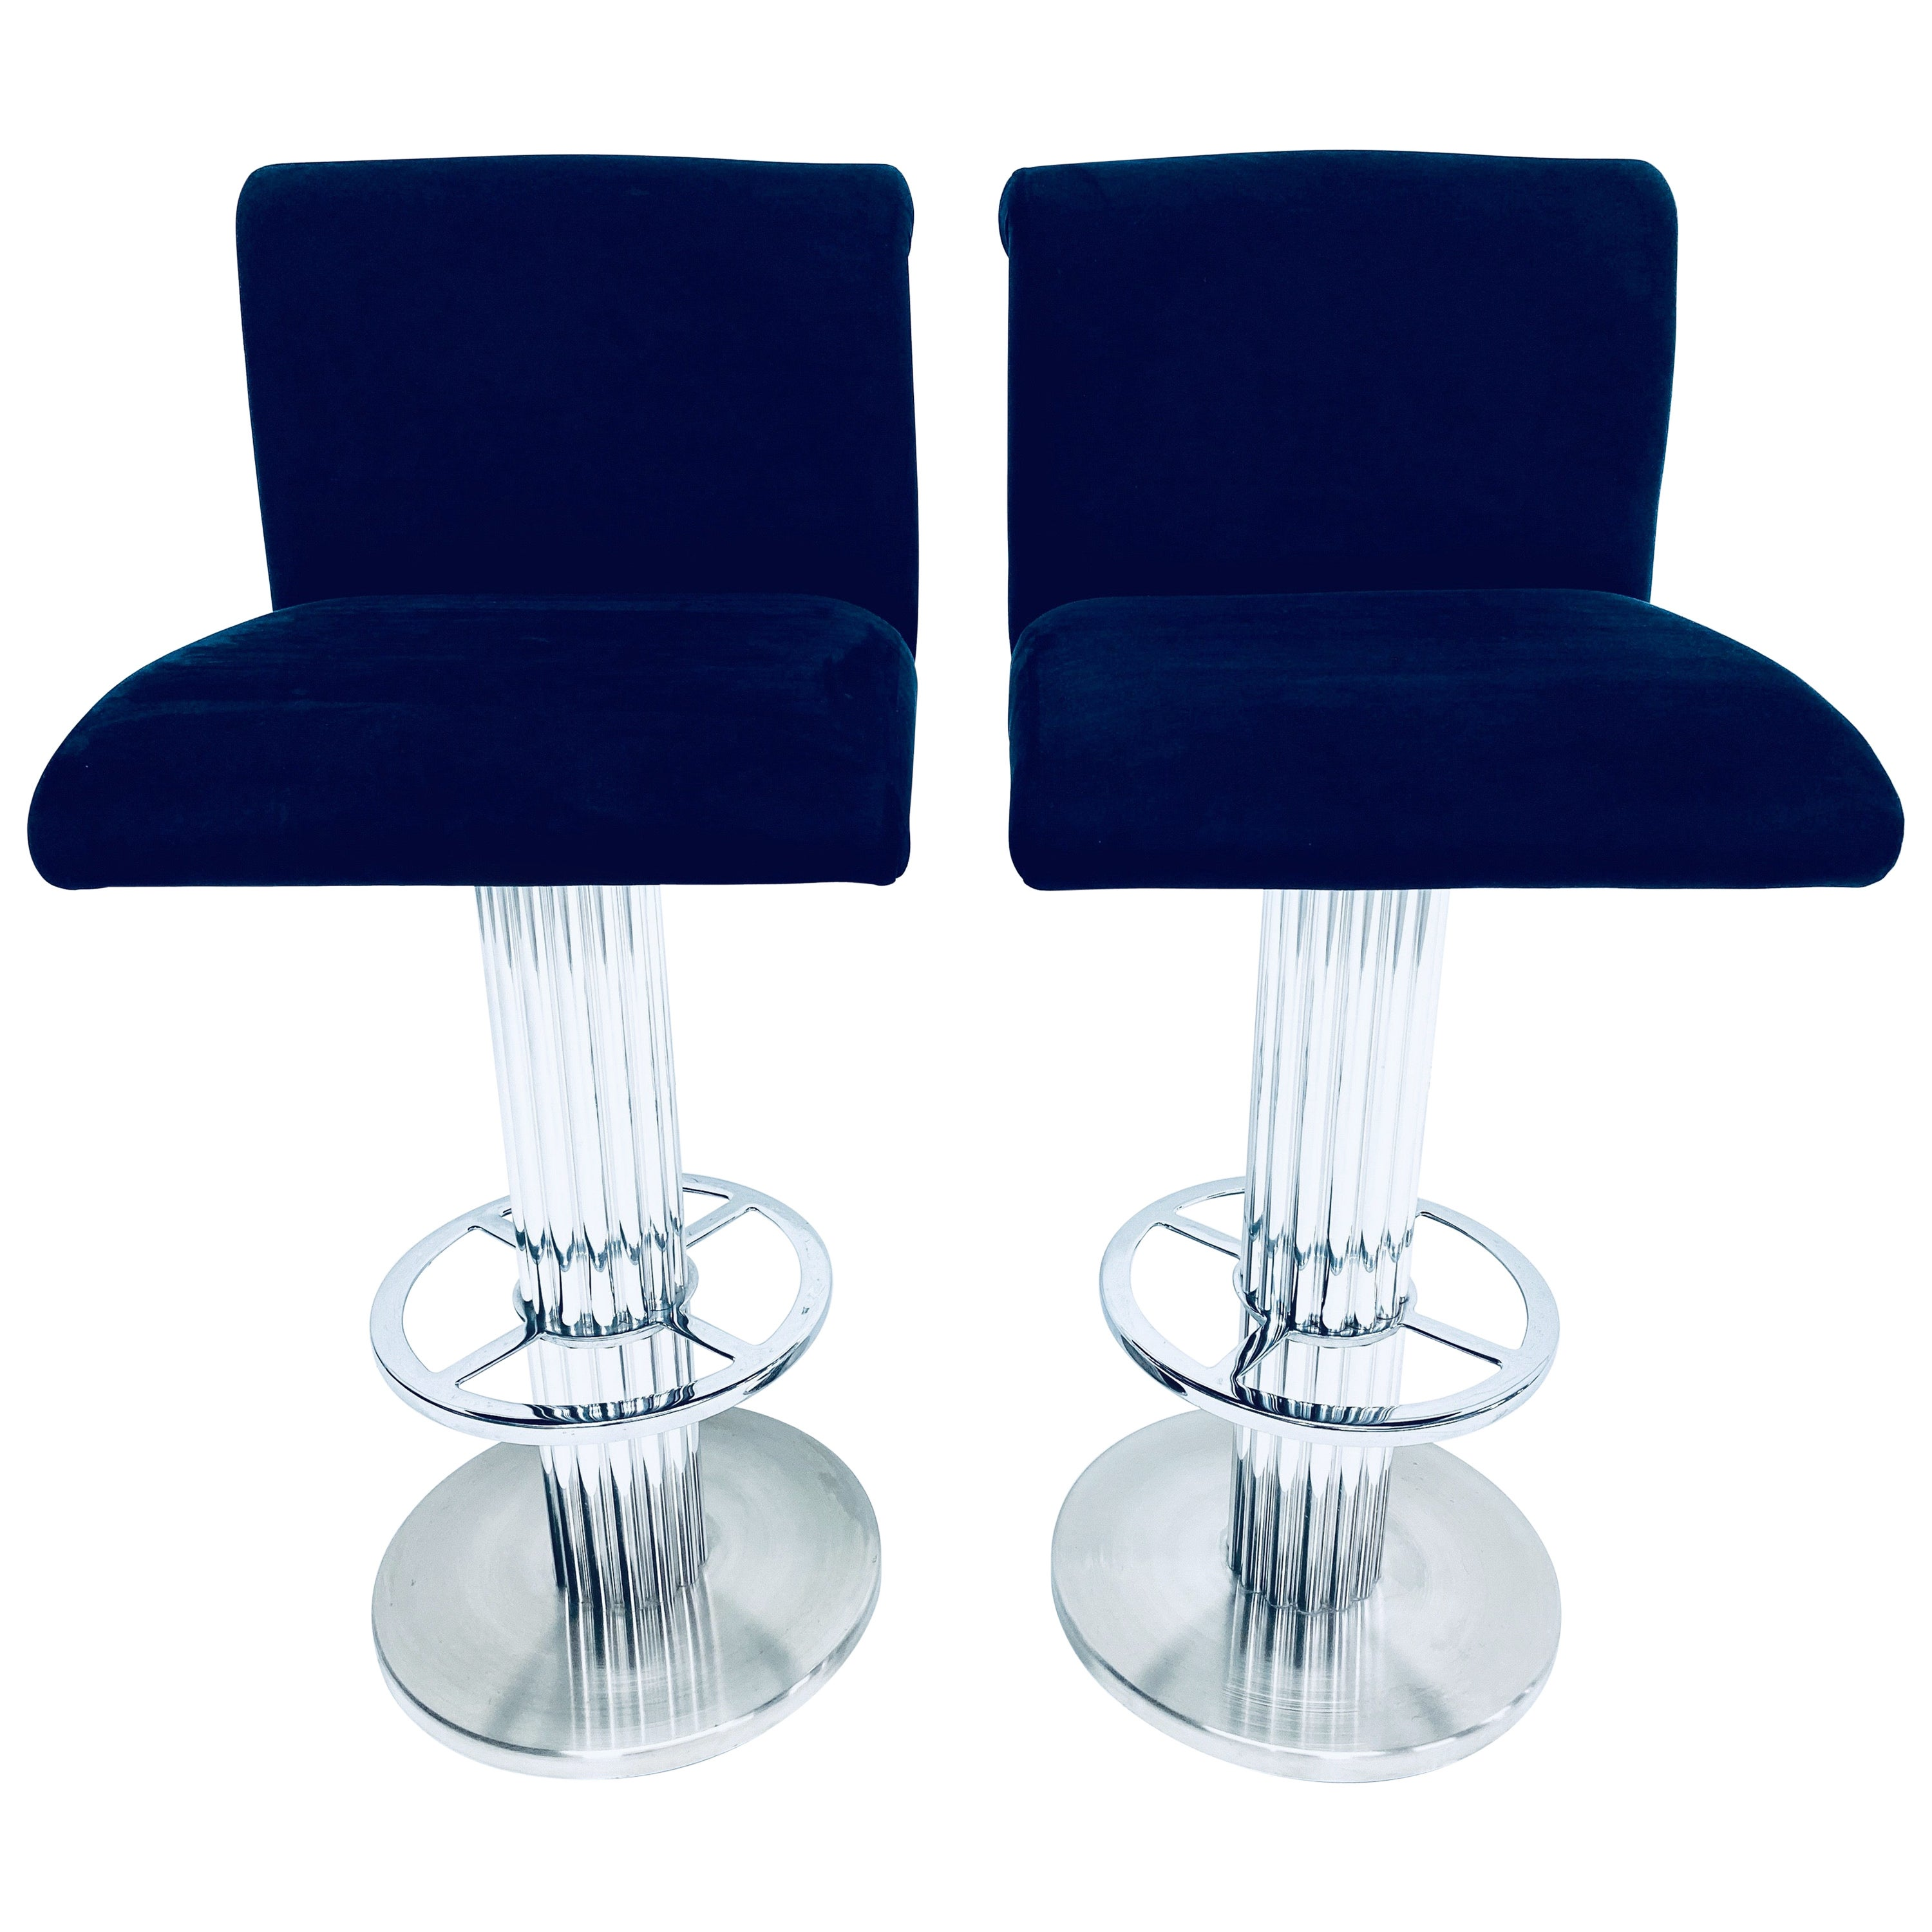 Pair of Designs for Leisure Blue Ultra-Suede Bar Stools